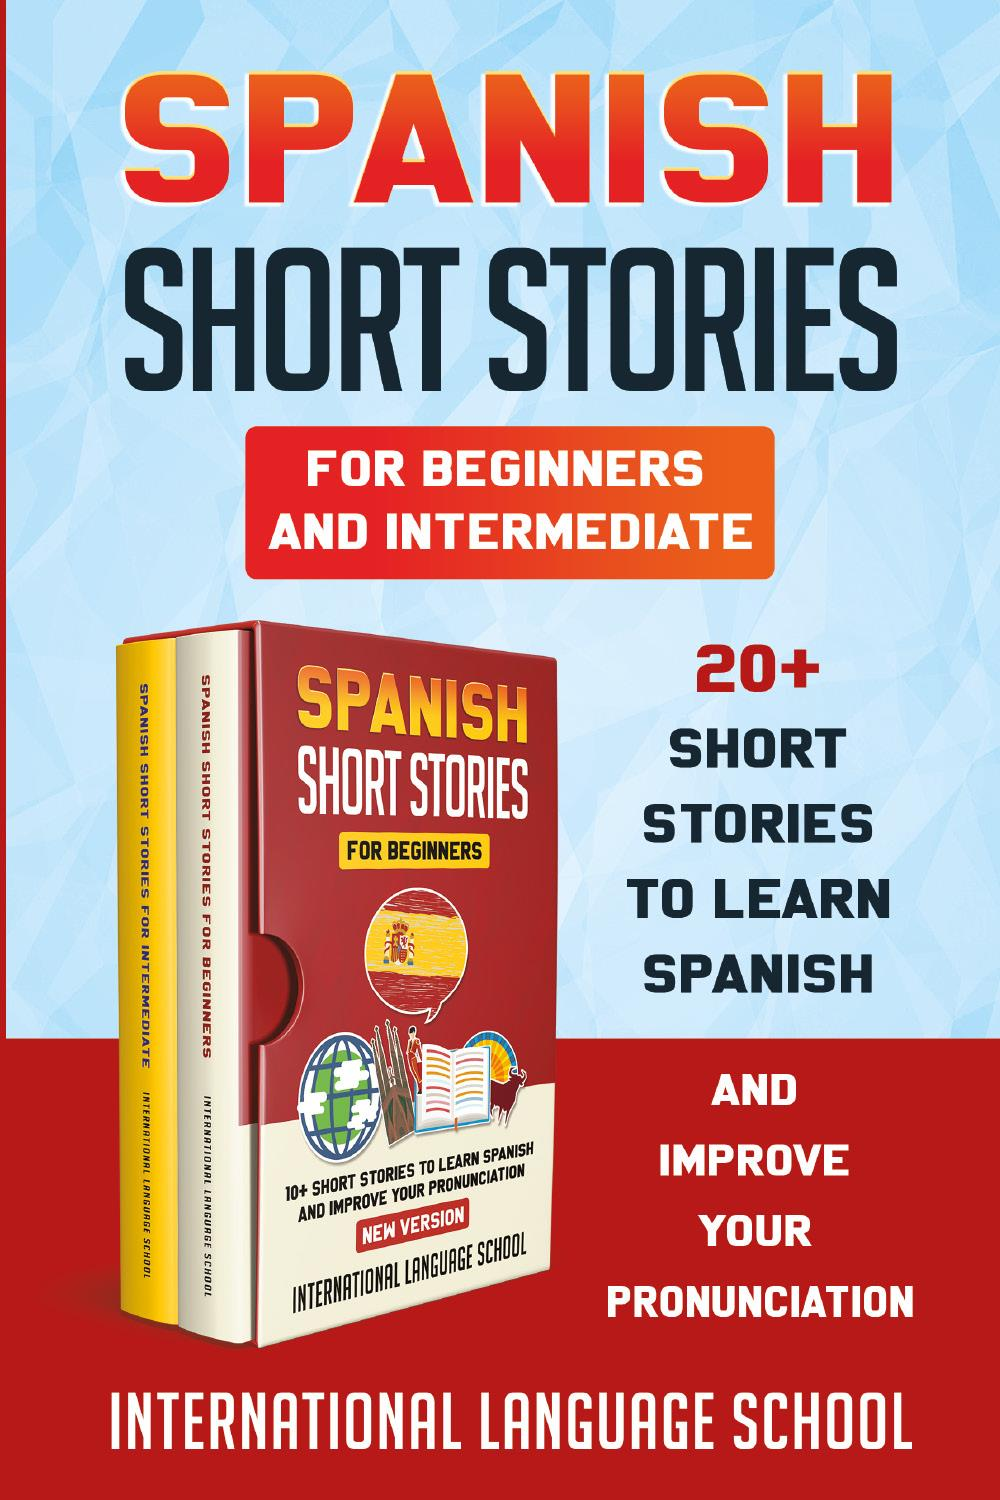 Spanish Short Stories for Beginners and Intermediate (New Version)